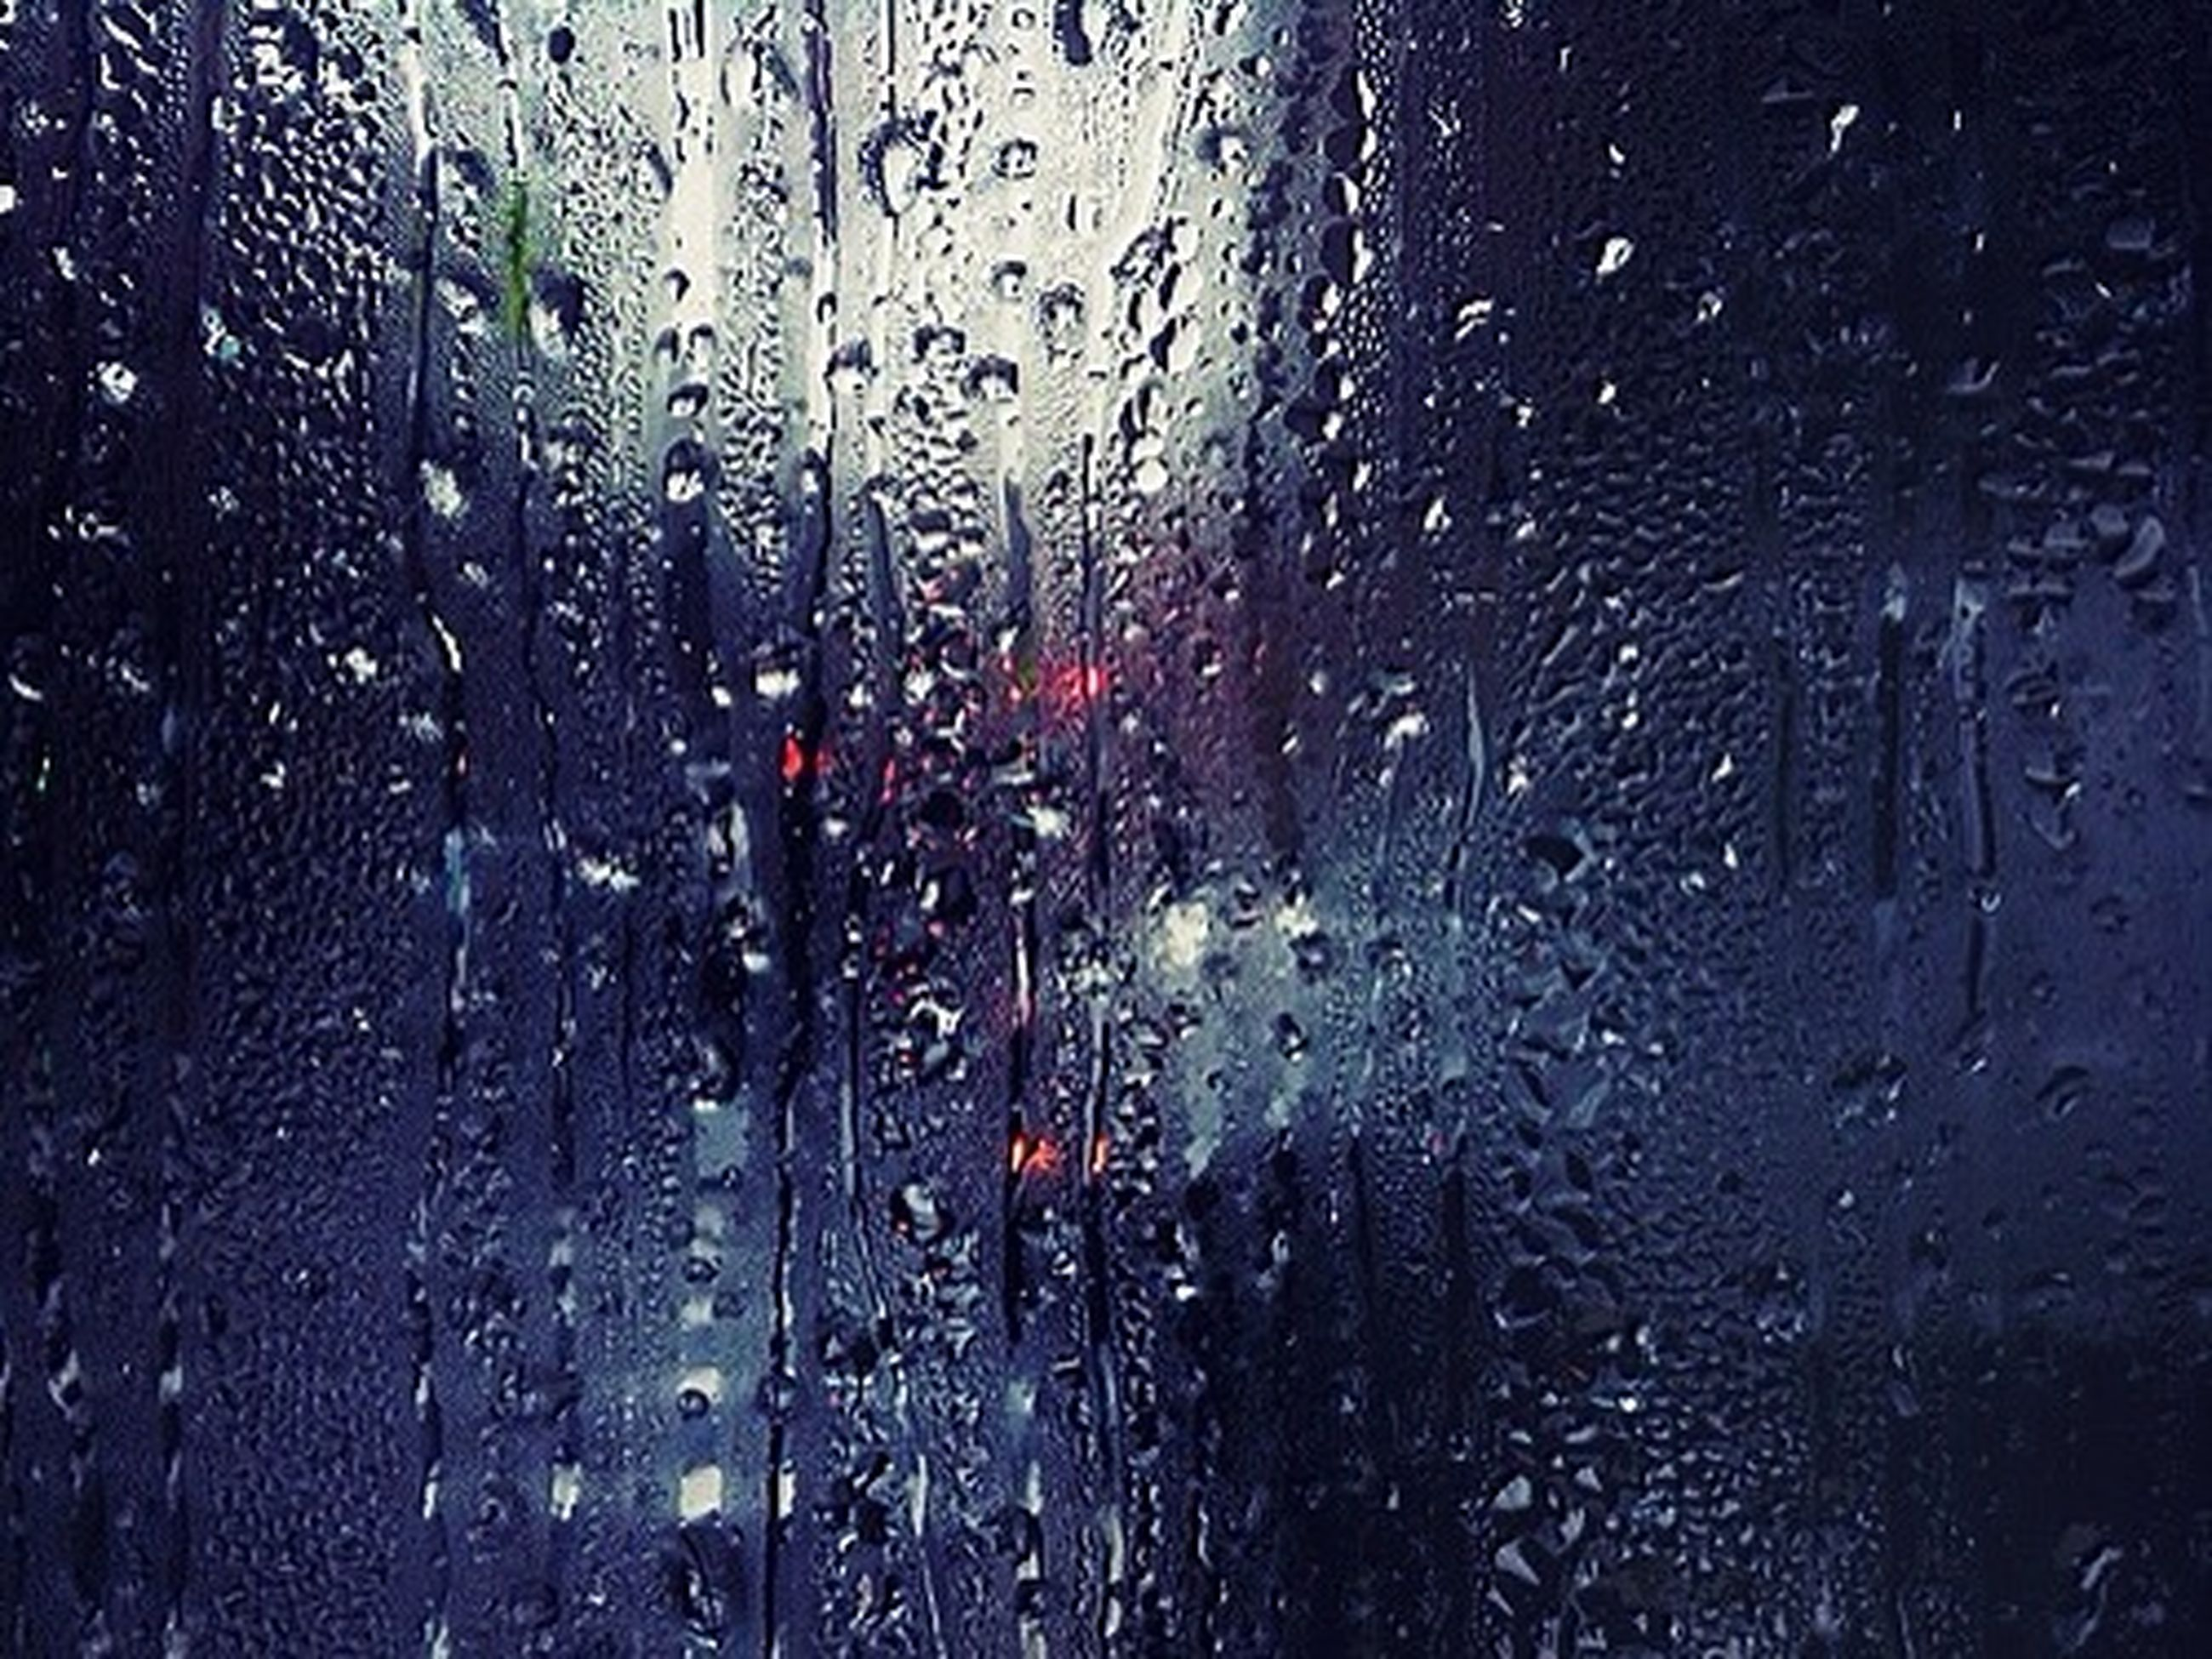 drop, wet, window, rain, transparent, glass - material, season, indoors, weather, raindrop, water, full frame, car, backgrounds, transportation, glass, monsoon, mode of transport, land vehicle, vehicle interior